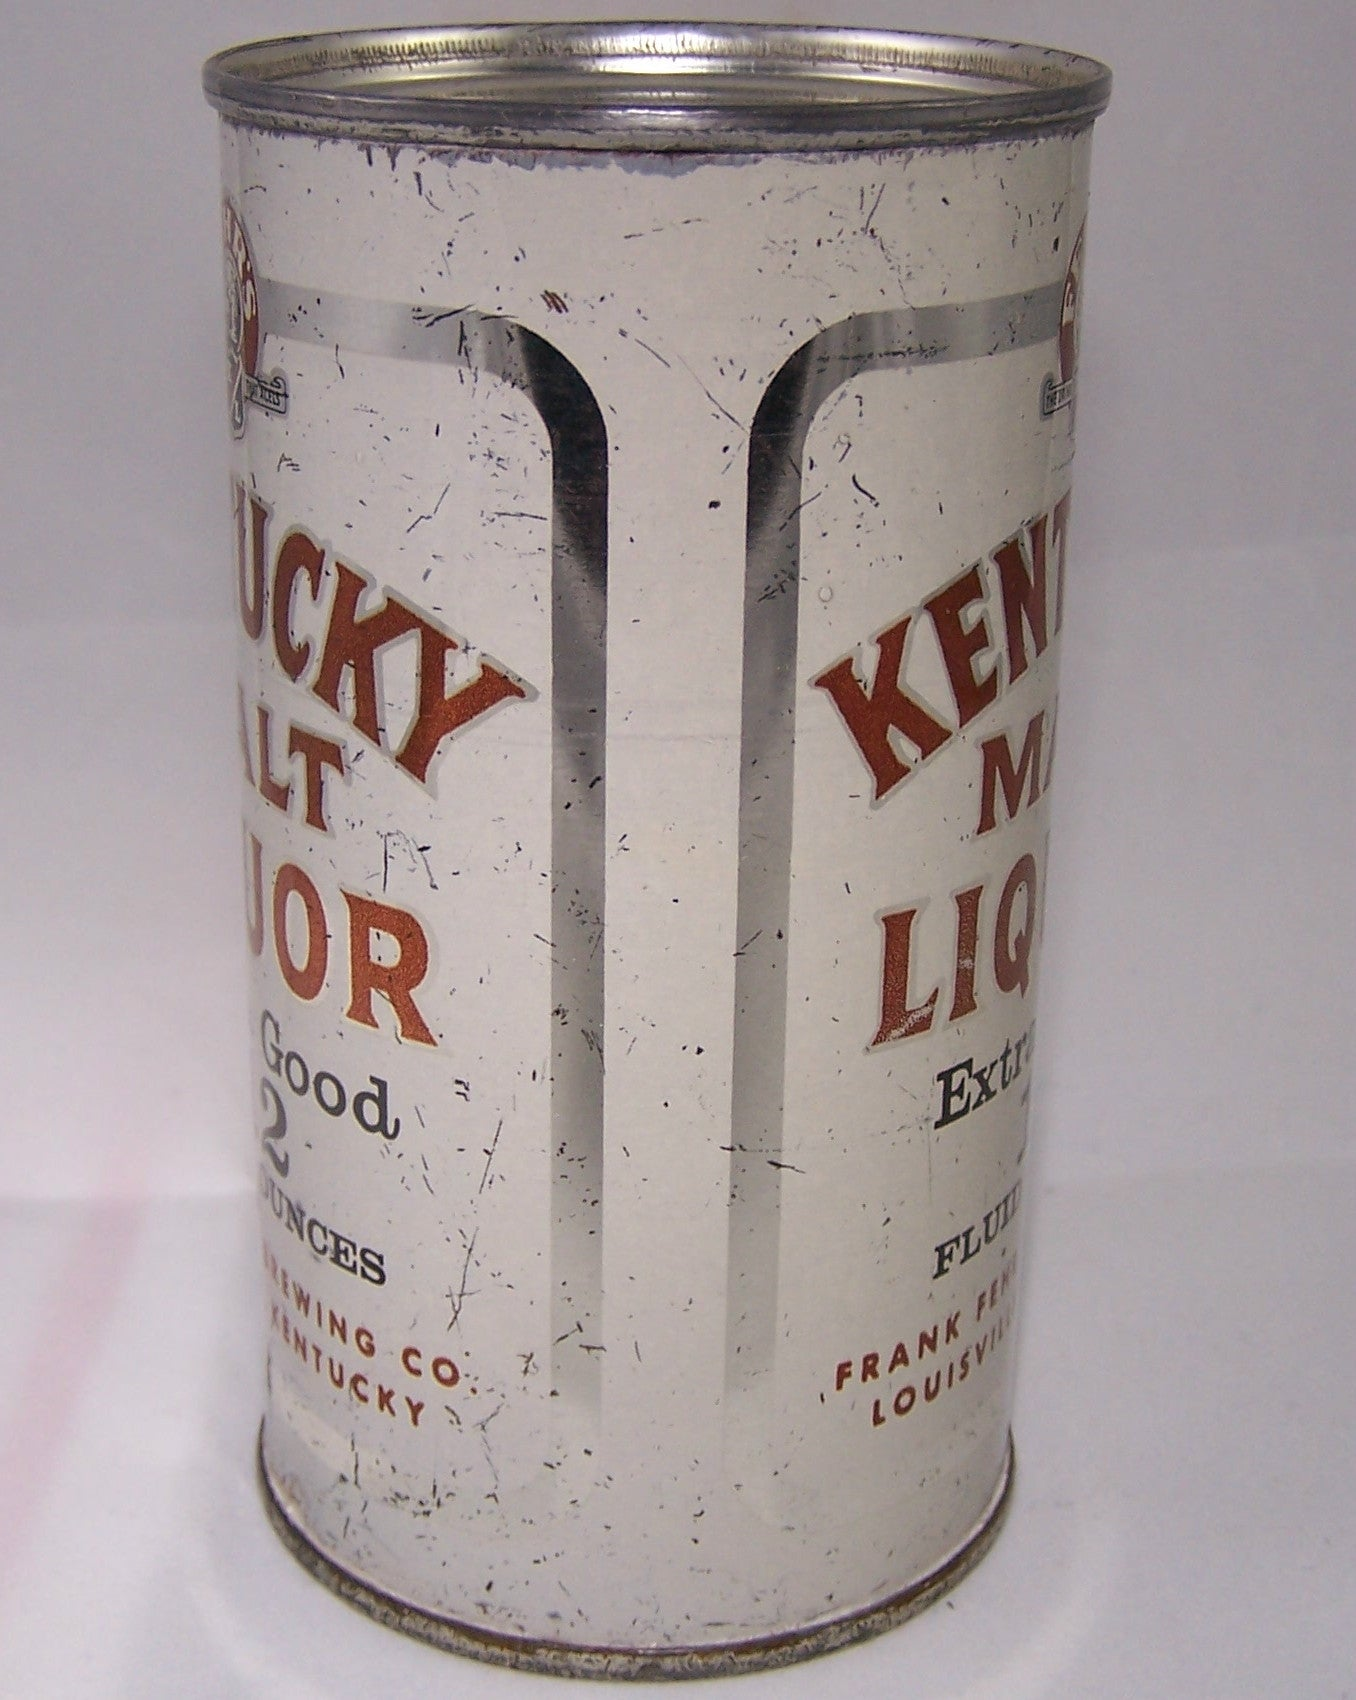 Kentucky Malt Liquor, USBC 87-33, Grade 1- Sold 7/11/15